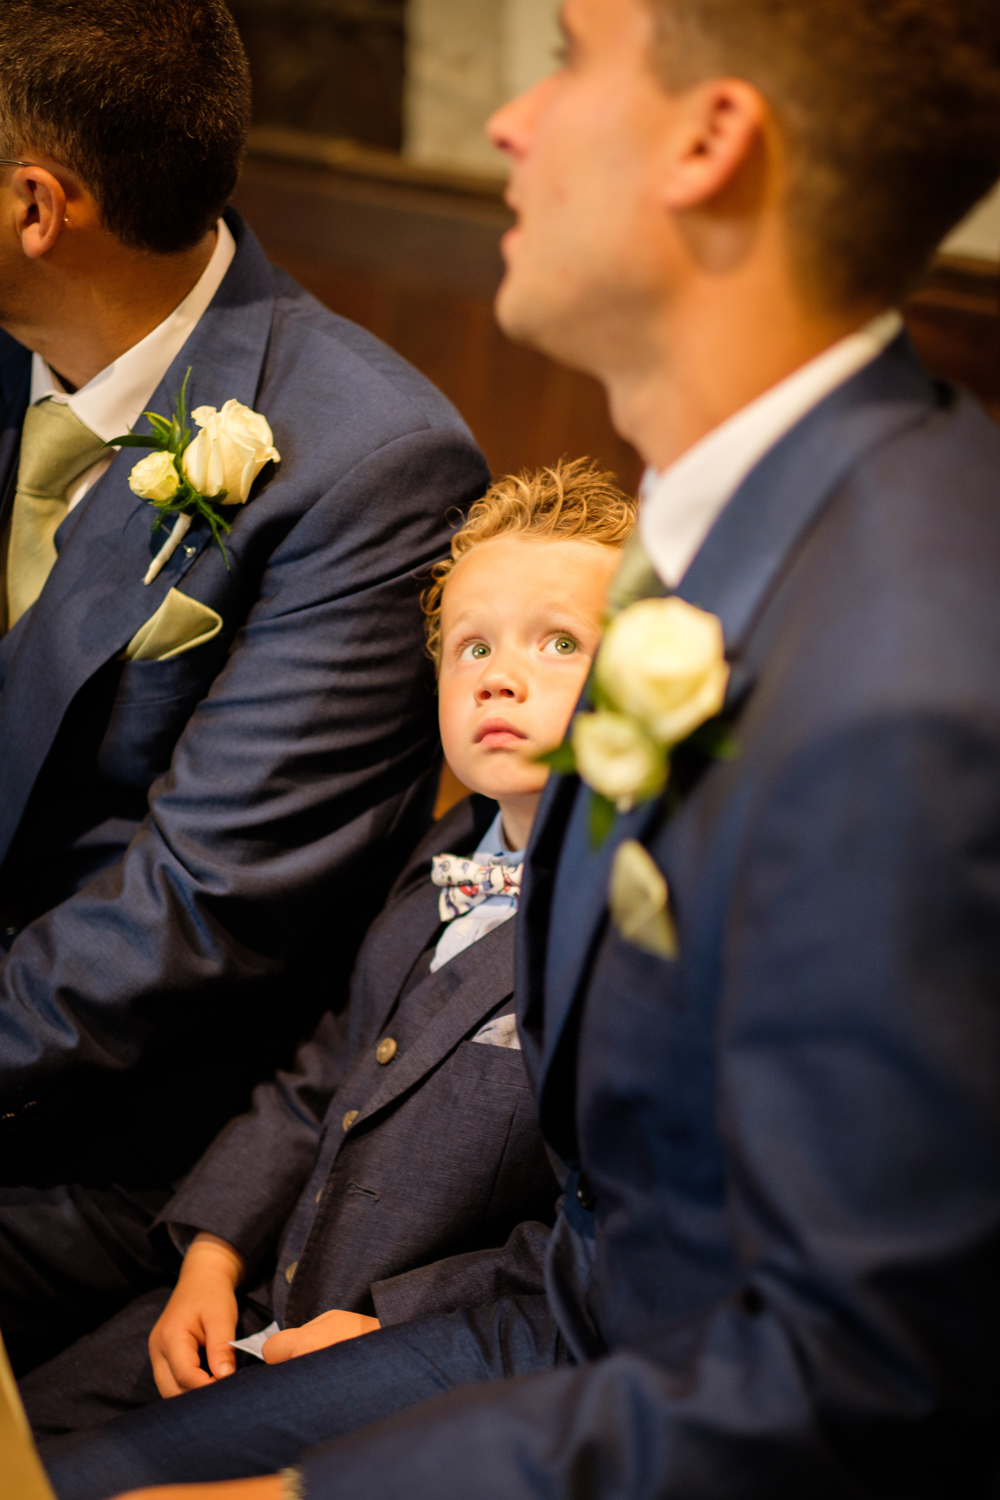 Little boy looking at Dad